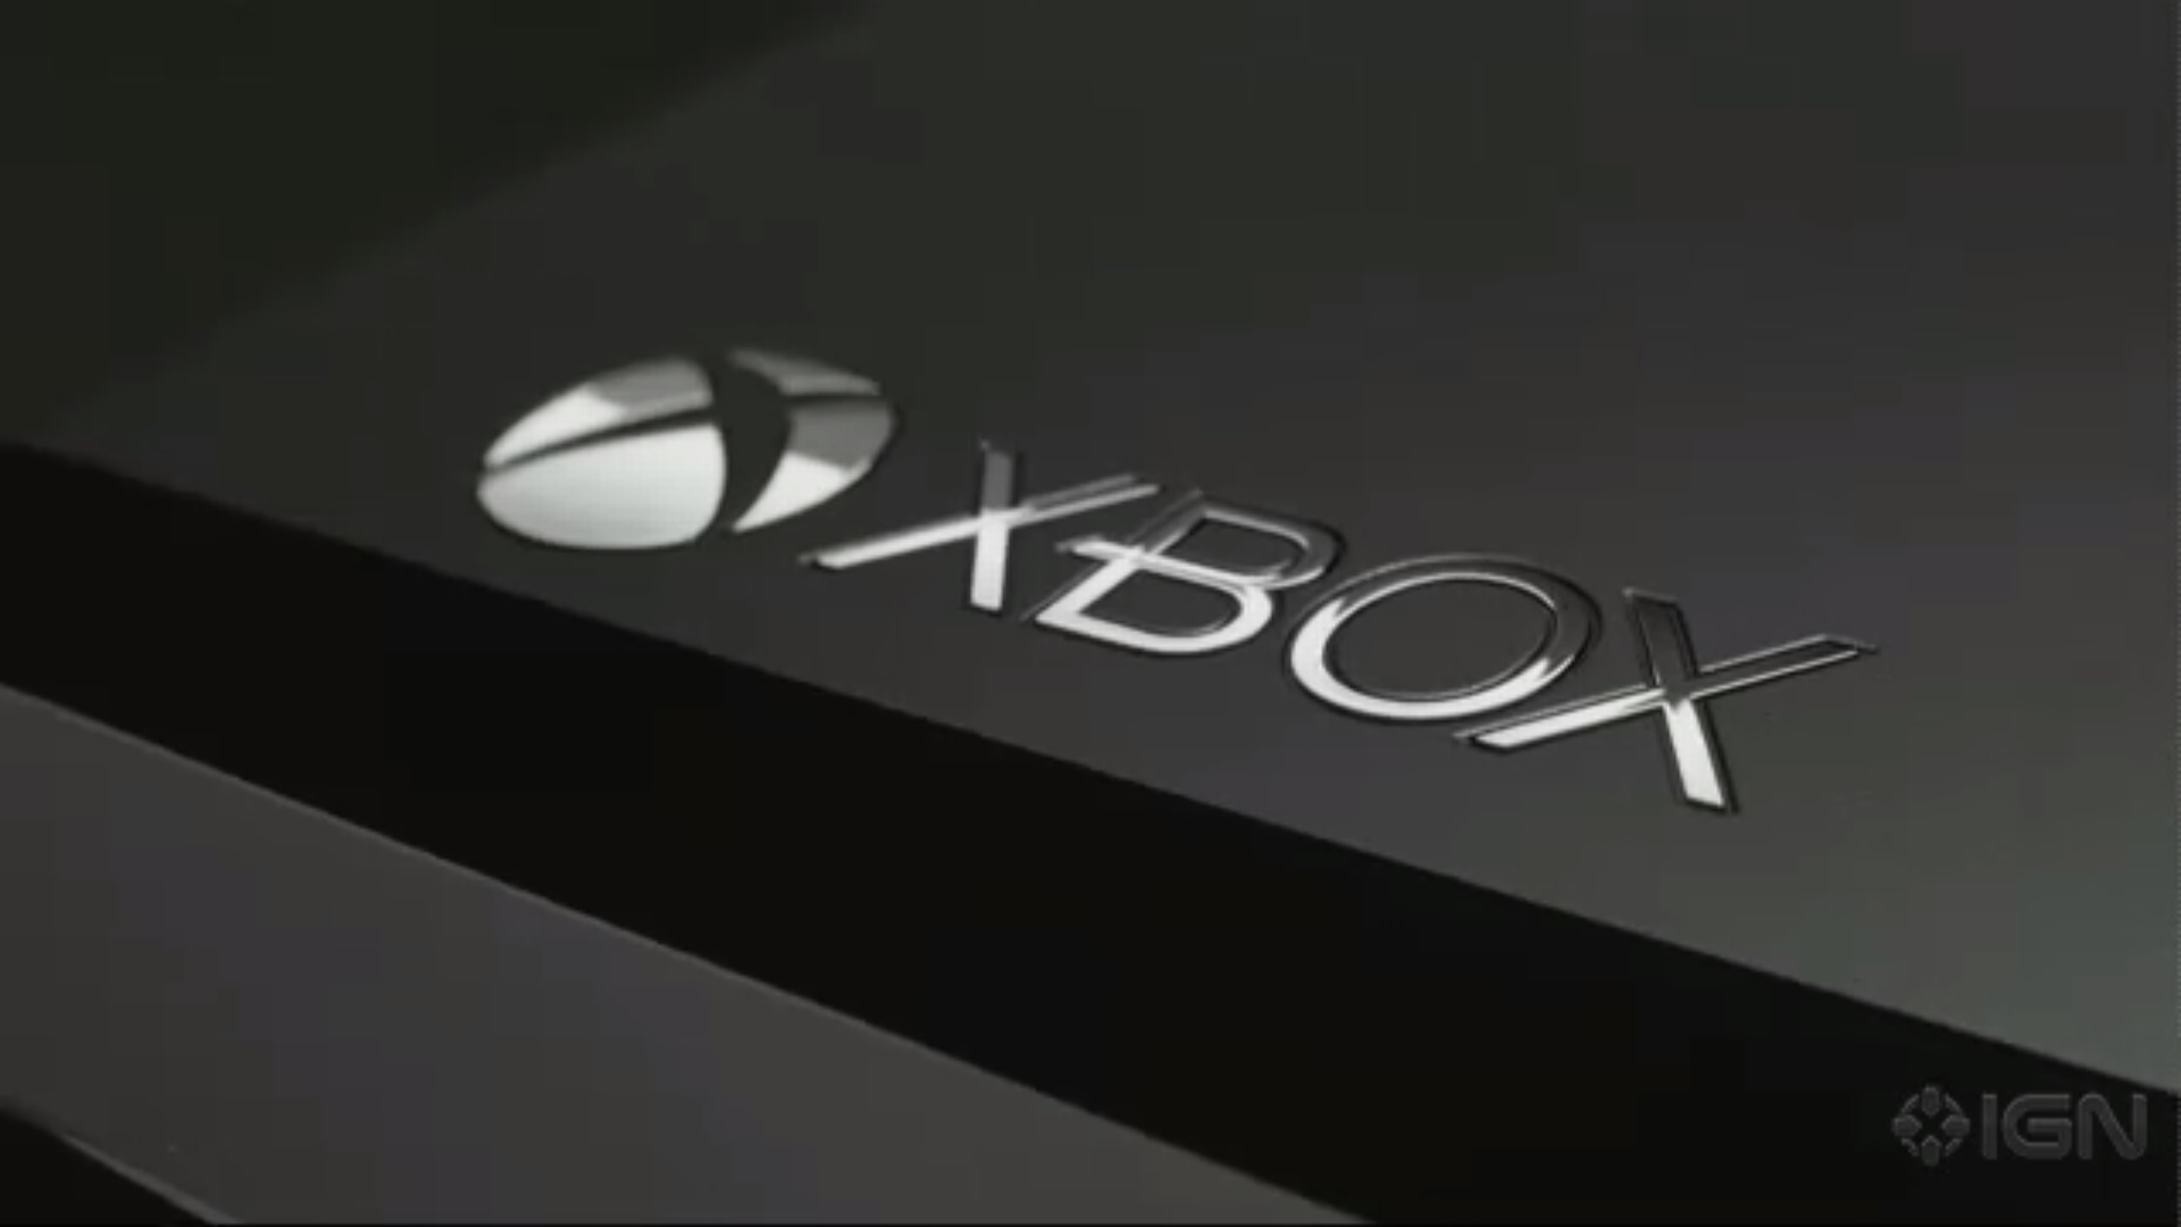 Xbox One, Hd Wallpapers and backgrounds Download Elsetge